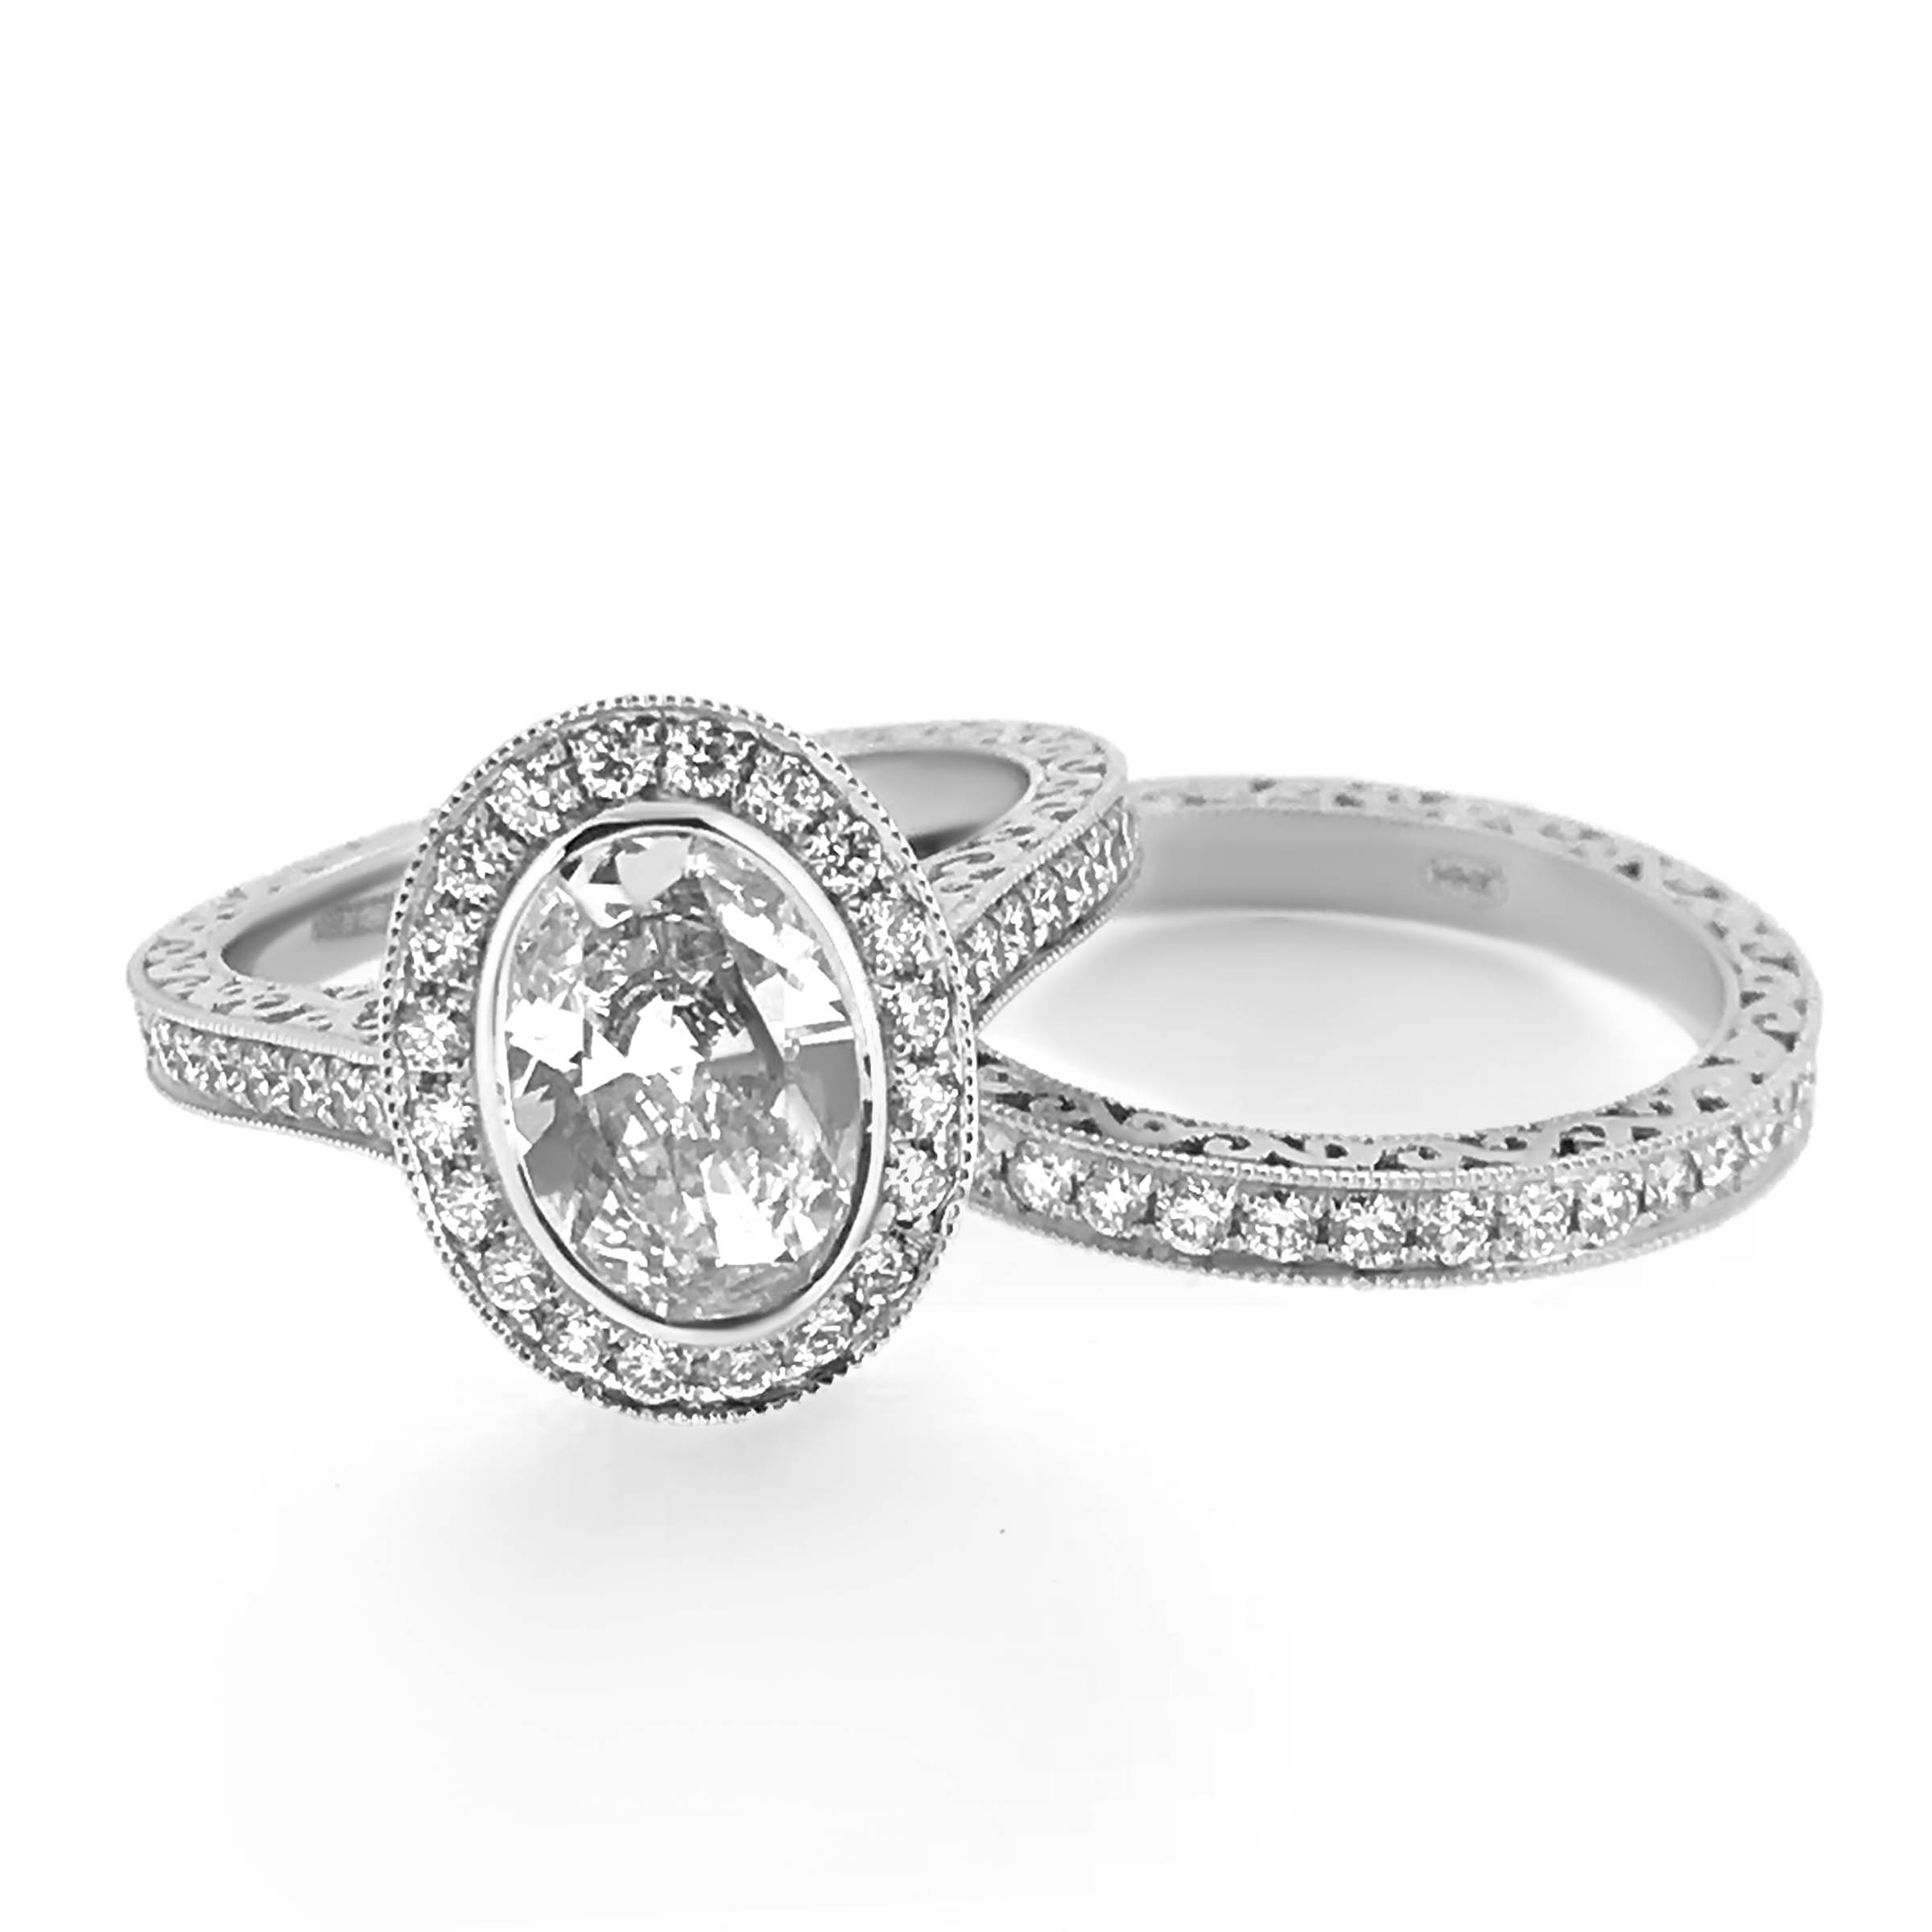 oval diamond engagement ring and wedding band set- haywards of hong kong